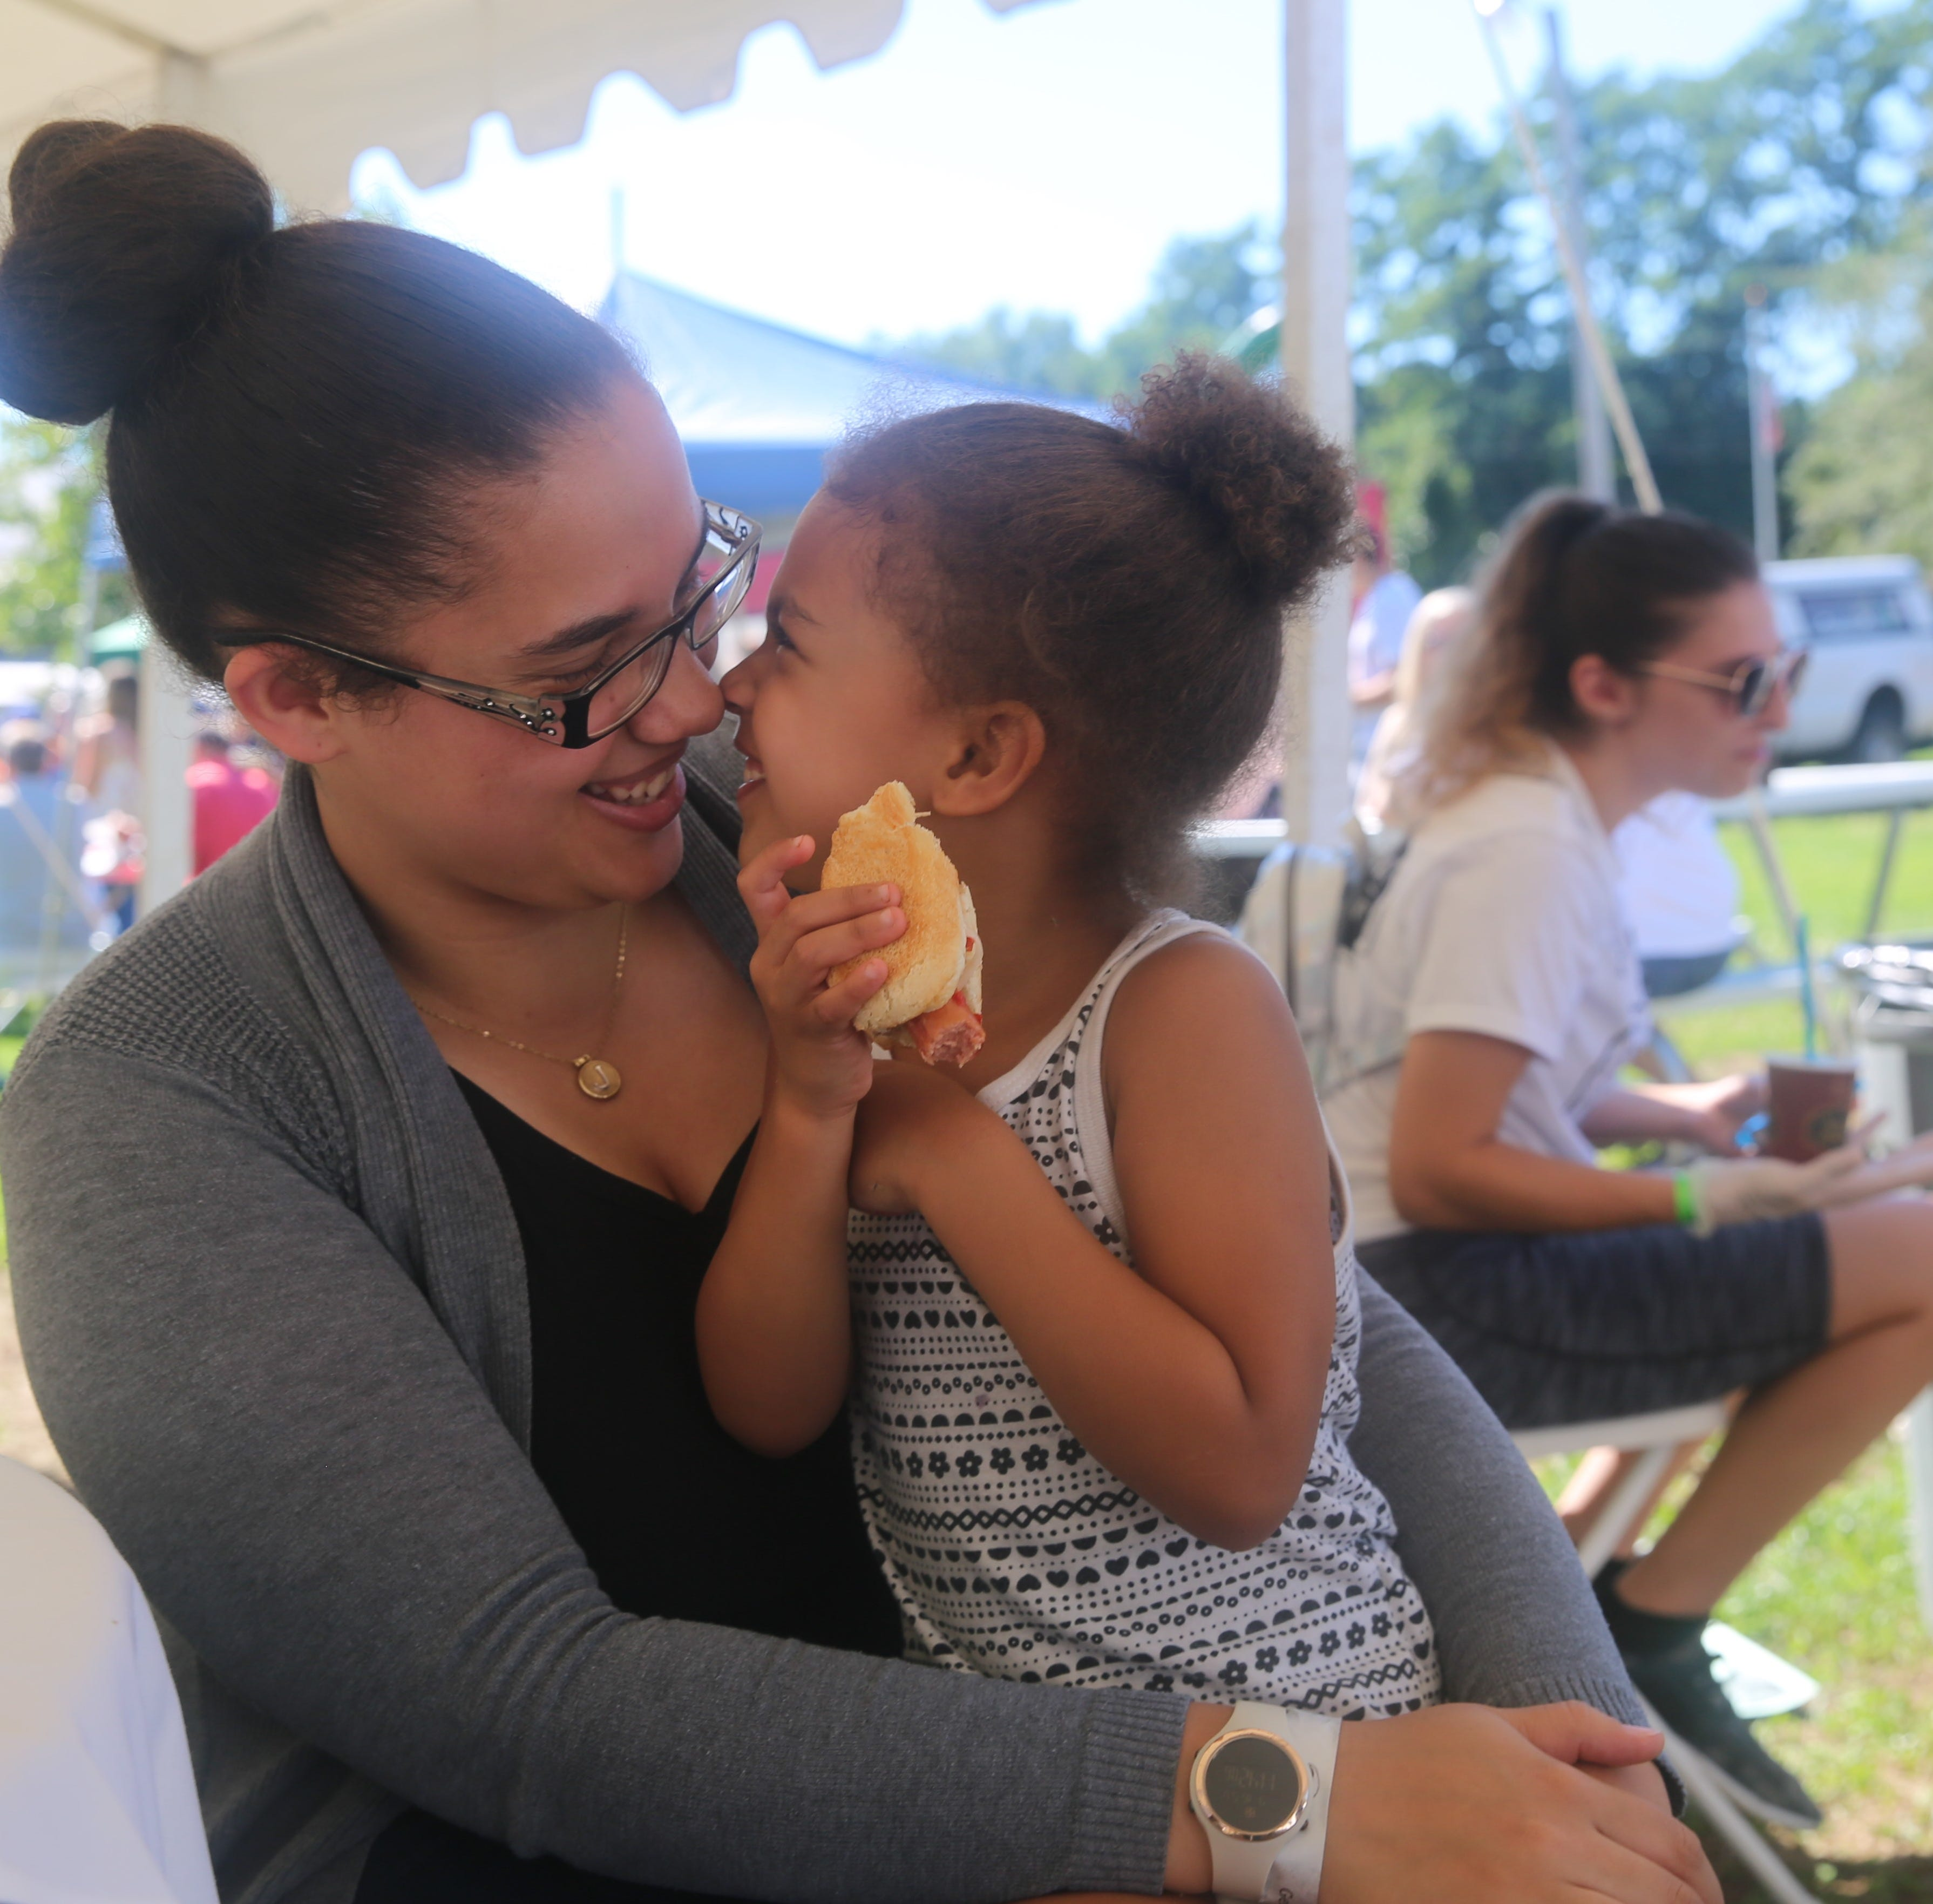 Jasmine Russell, of Monticello, shares a moment with her 4-year-old daughter, Amelia, during A Taste of New Paltz on Sunday. She said she wanted to find out about some new restaurants to potentially try.